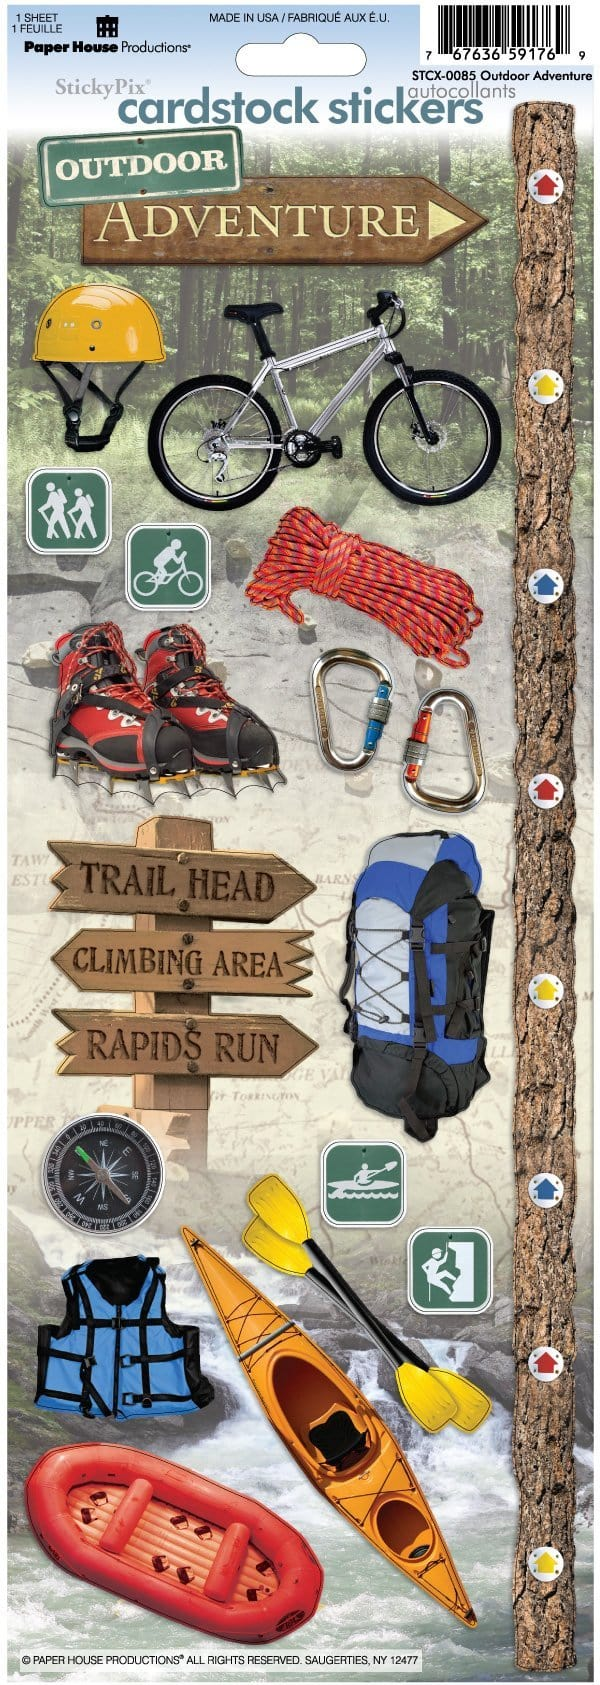 Outdoor Adventure Cardstock Stickers